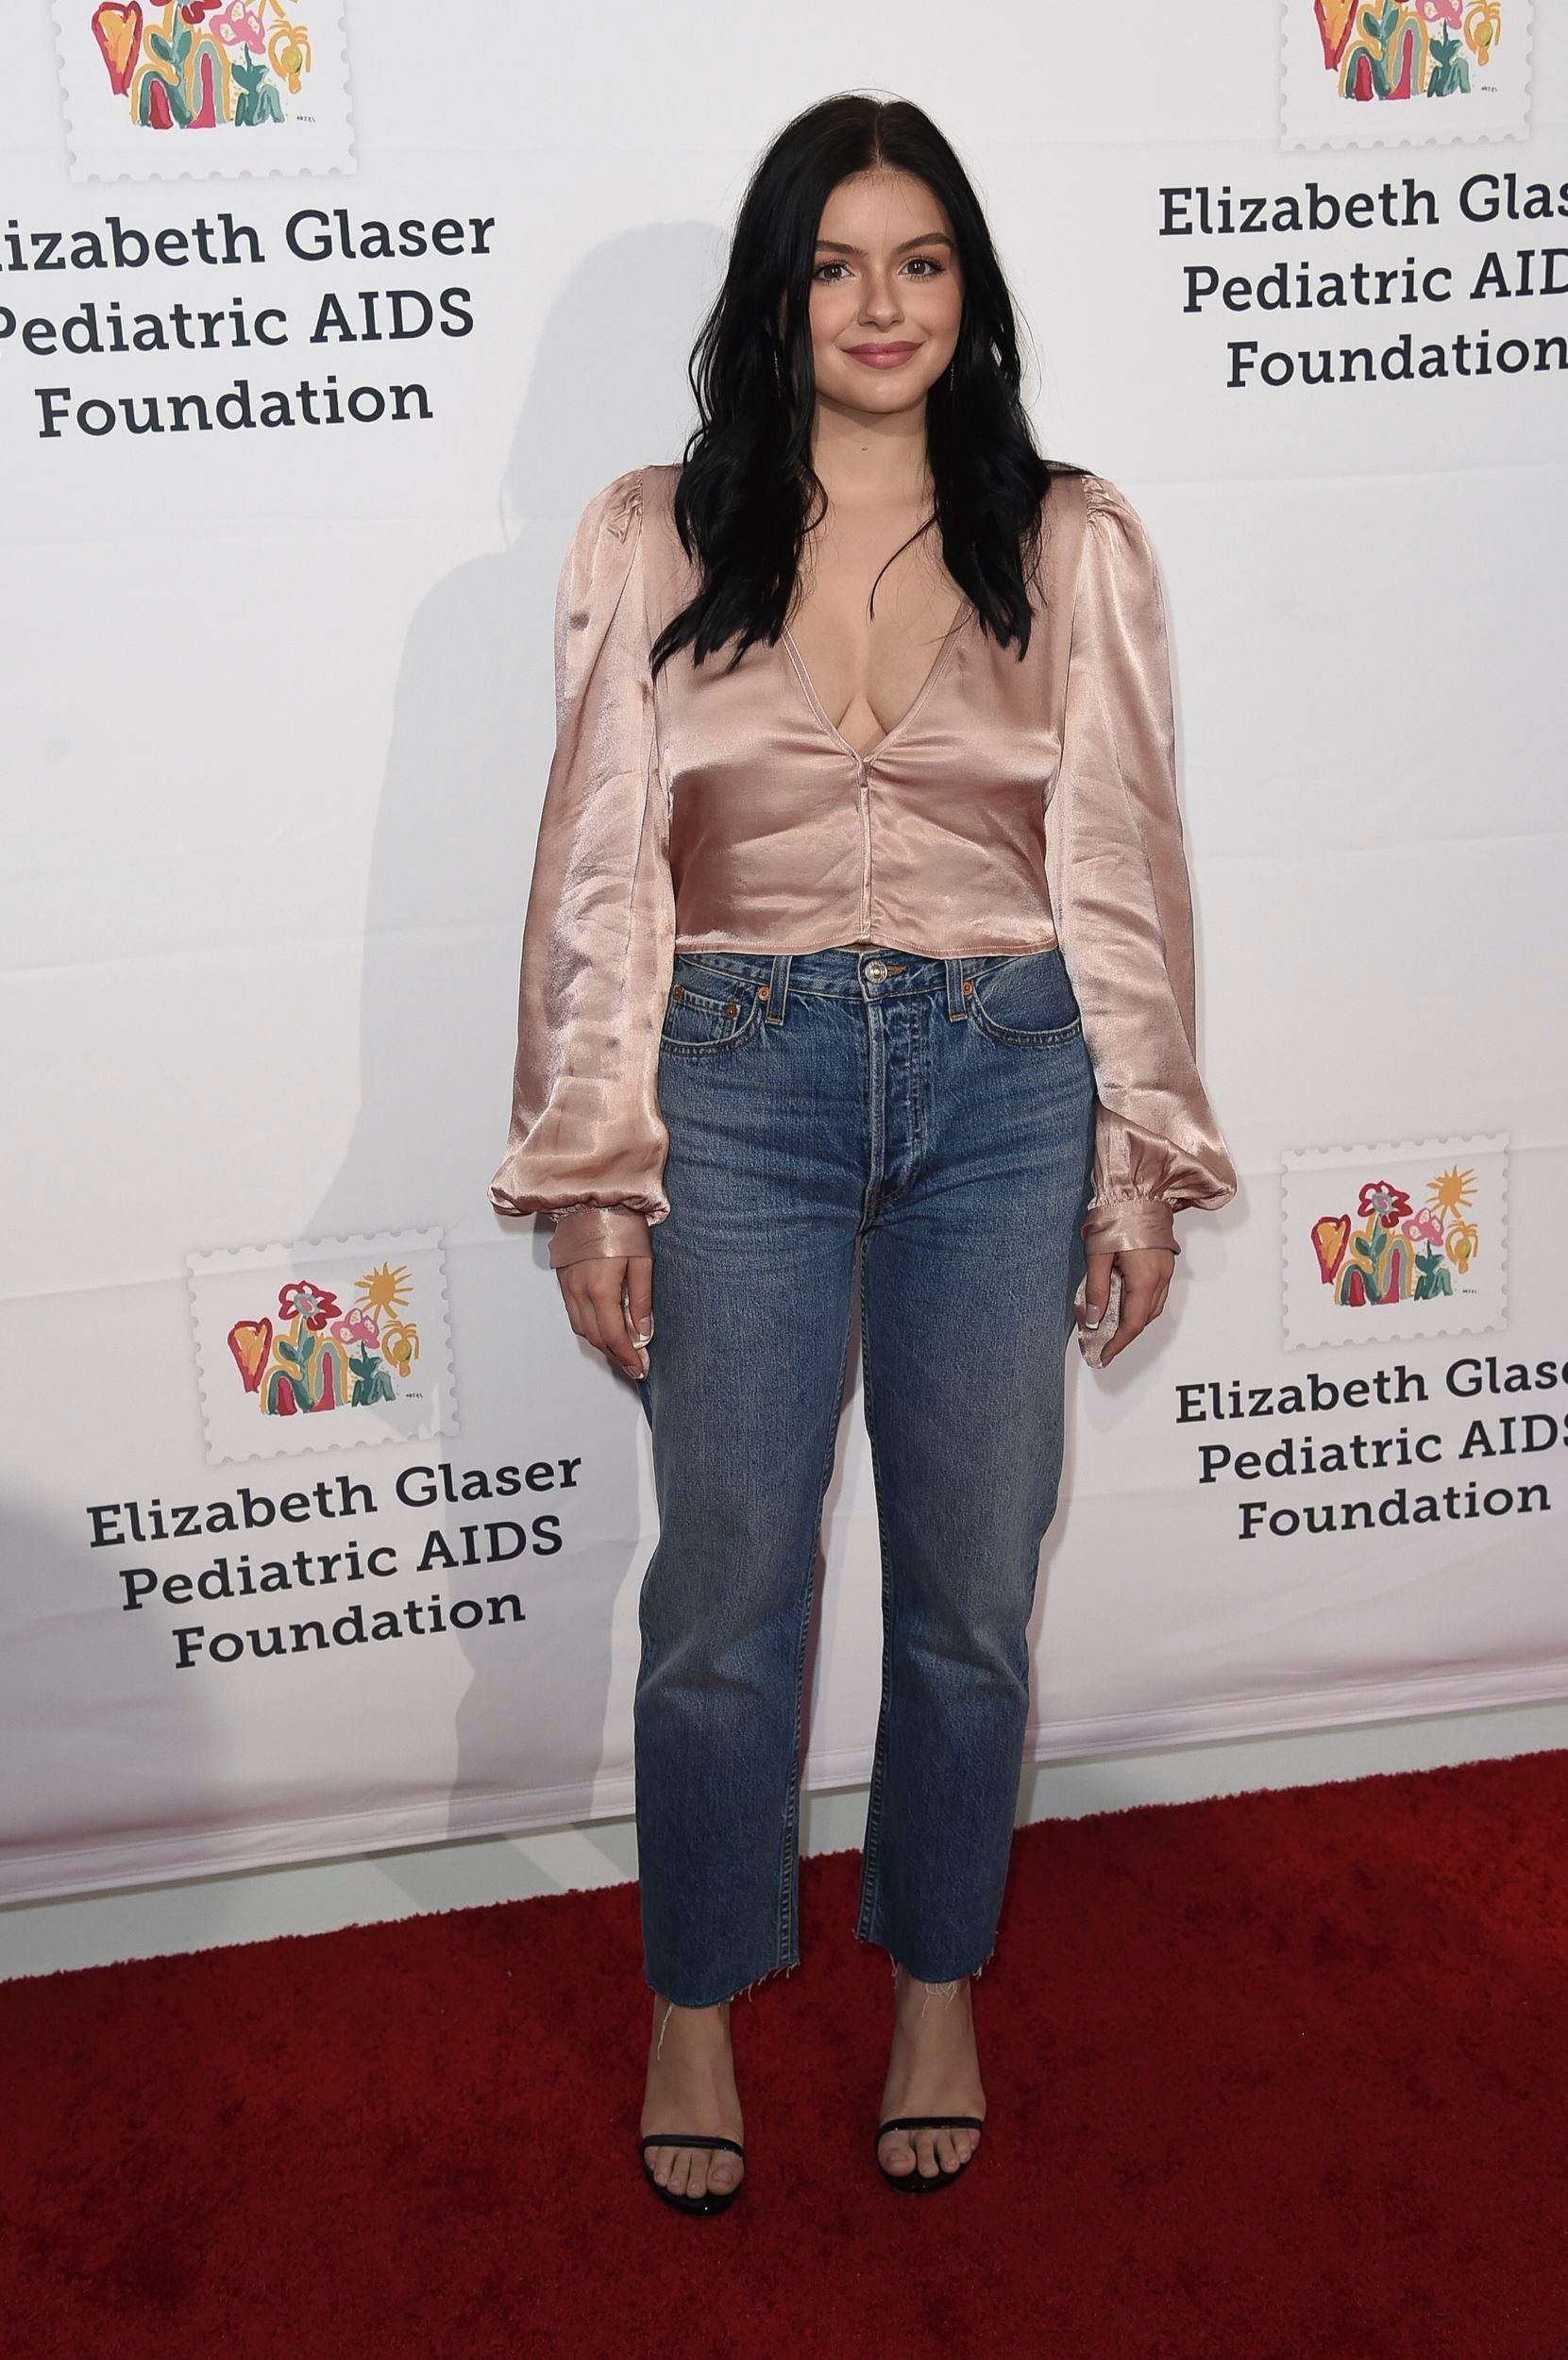 Ariel Winter attends the Elizabeth Glaser Pediatric AIDS Foundation 30th Anniversary in Los Angeles on Oct. 28, 2018.